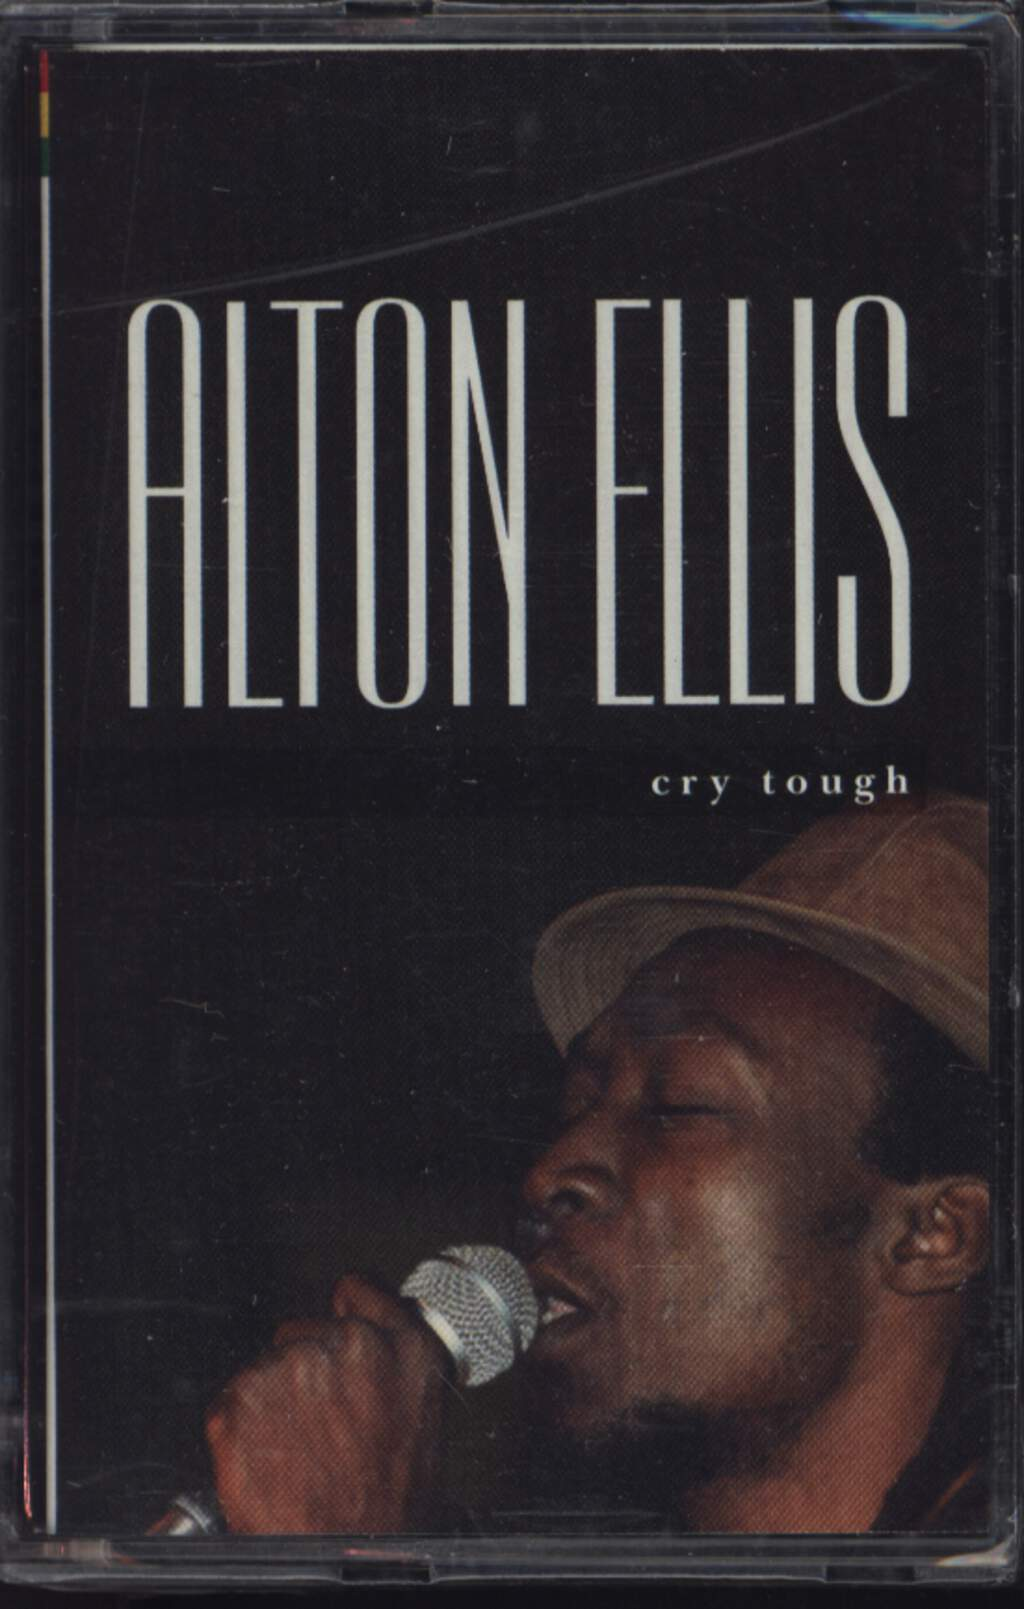 Alton Ellis: Cry Tough, Compact Cassette